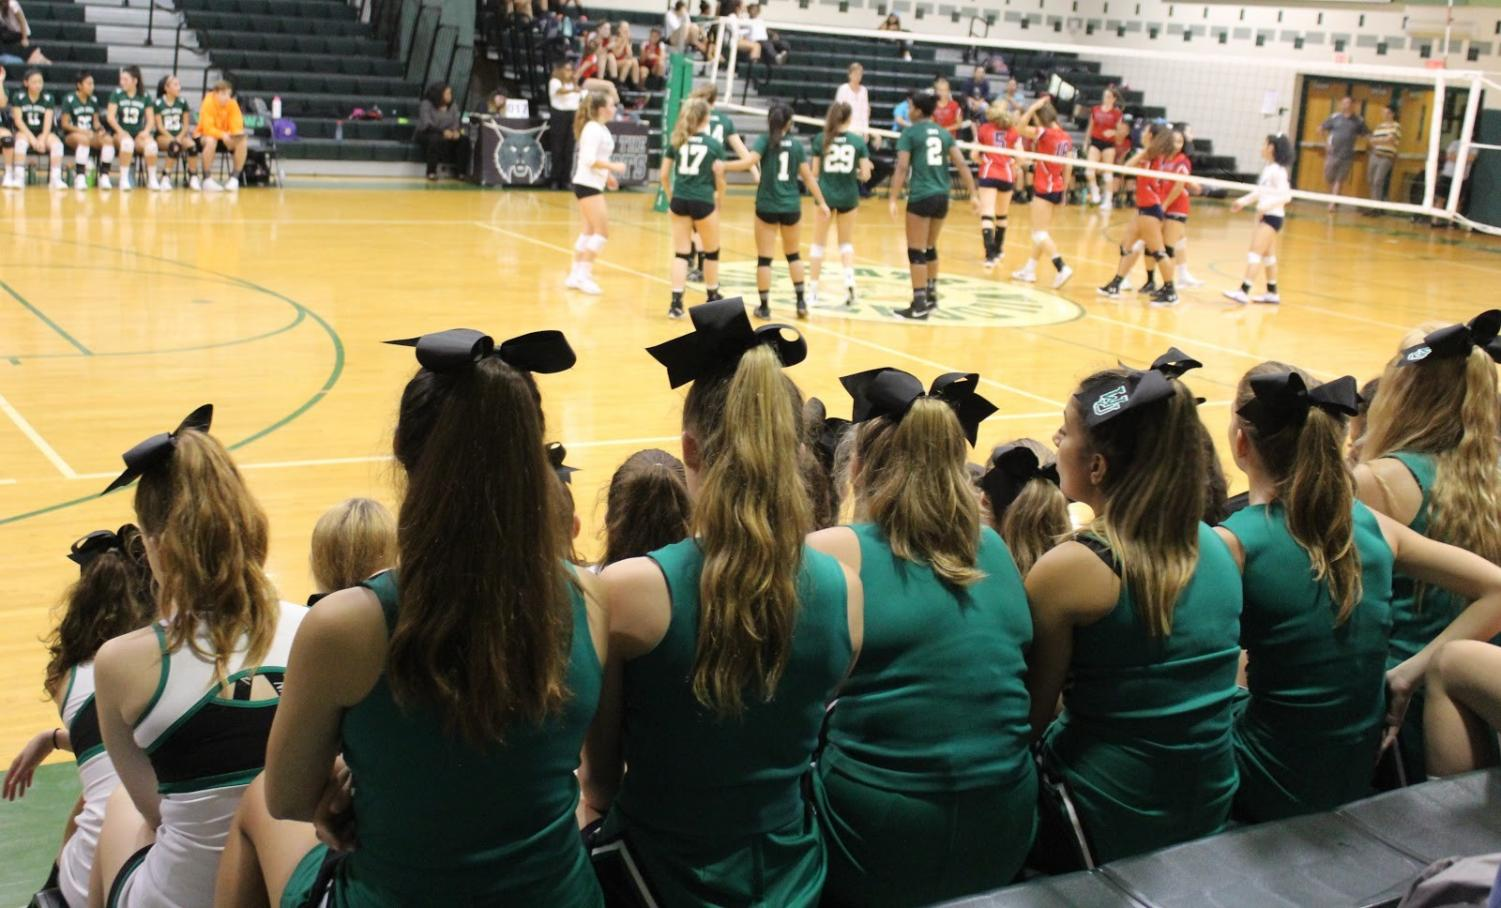 Varsity and JV cheerleading teams attend the girls varsity volleyball game, and cheer them on during their win over Wootton.  In the fall, cheer primarily attended football games, and not many other sports, due to their busy schedule.